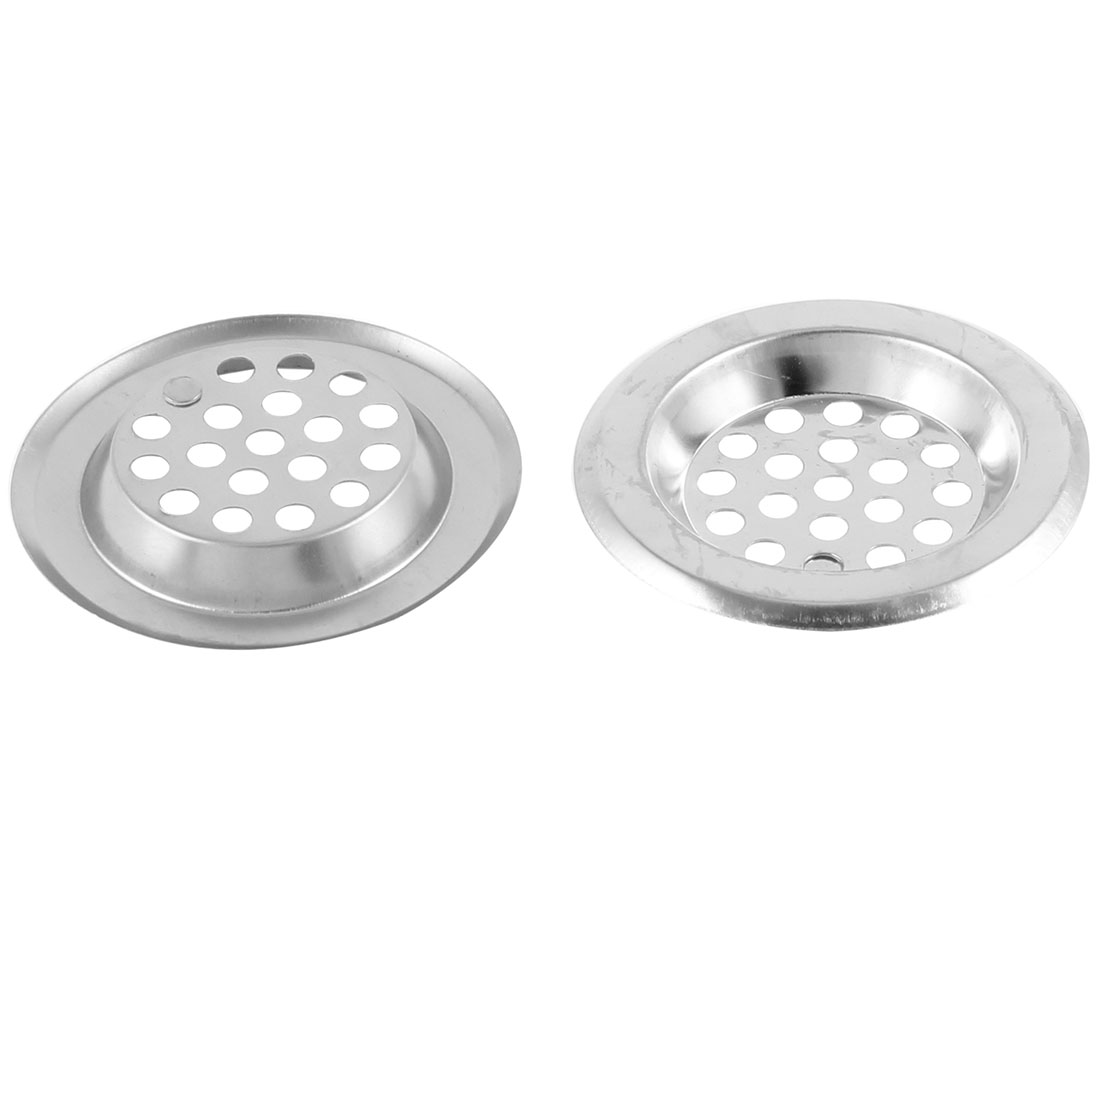 "2 Pcs Home Hole Mesh 0.3"" Depth Floor Drain Sink Drainer Strainer Silver Tone"